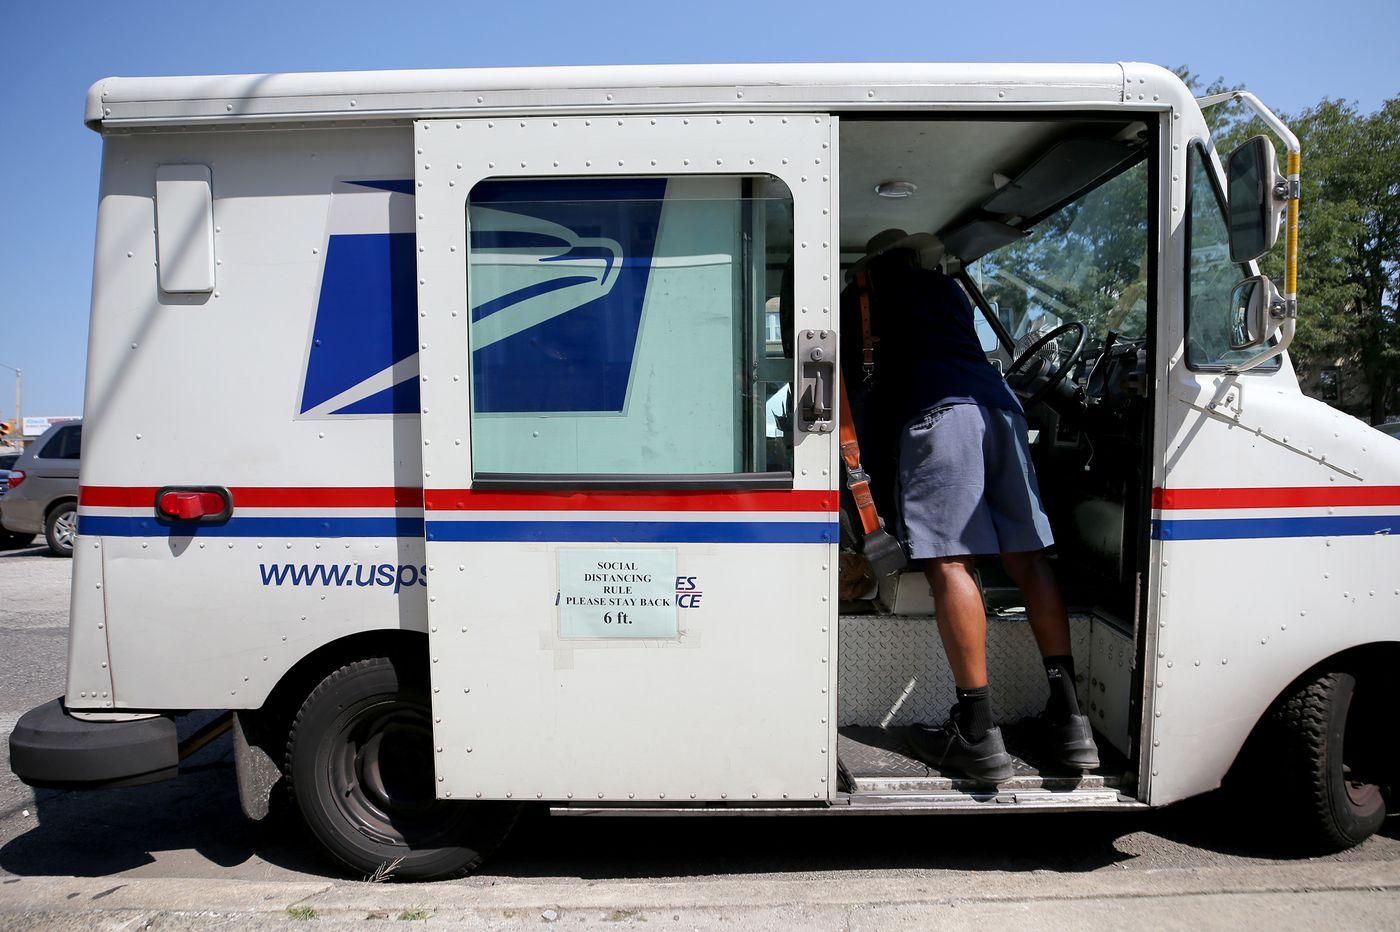 Pennsylvania leads federal lawsuit against USPS over mail delays as postmaster general signals a reversal